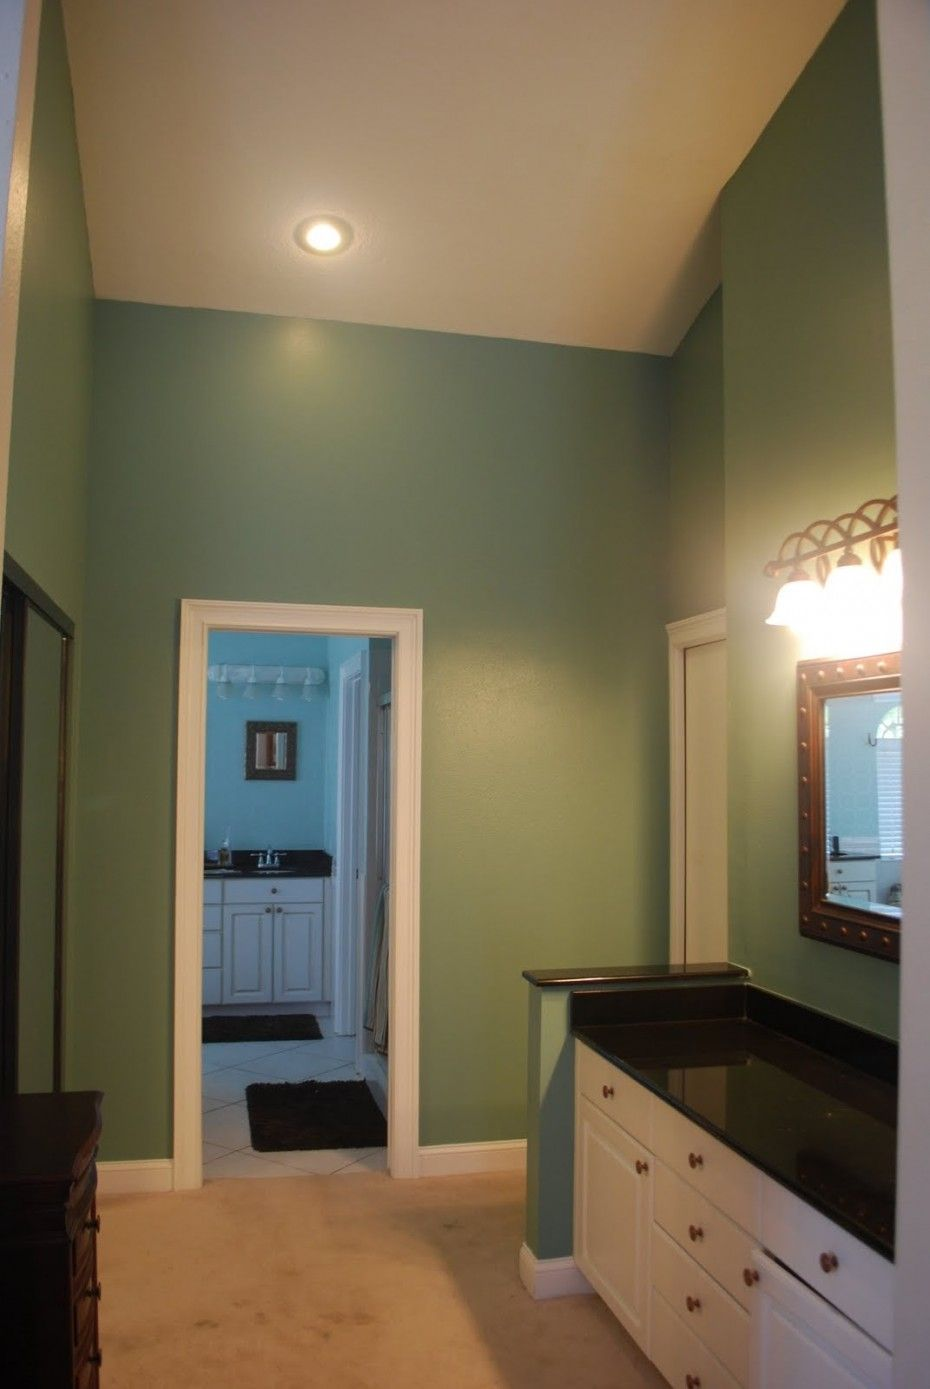 Green bathroom paint ideas - Bathroom Paint Colors Ideas Warm Green Bathroom Painting